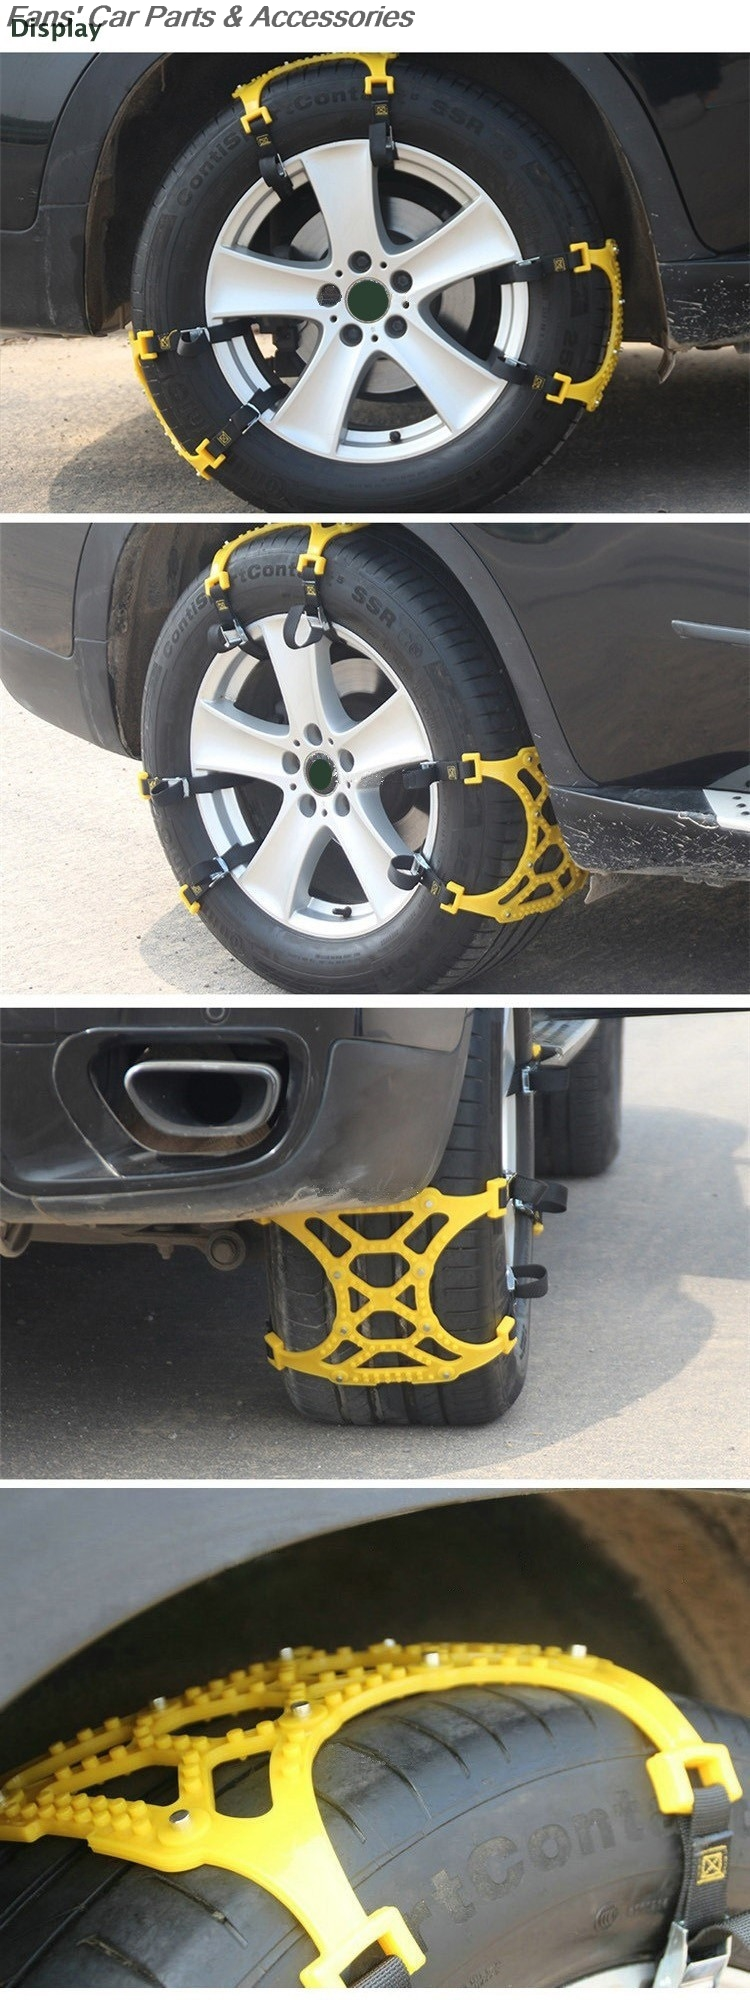 3Pcs/lot Car Winter Snow Tire Anti-skid Chains Double Card Buckle Snow Tires Beef Tendon Thickening Chain for 165-265mm Tyre